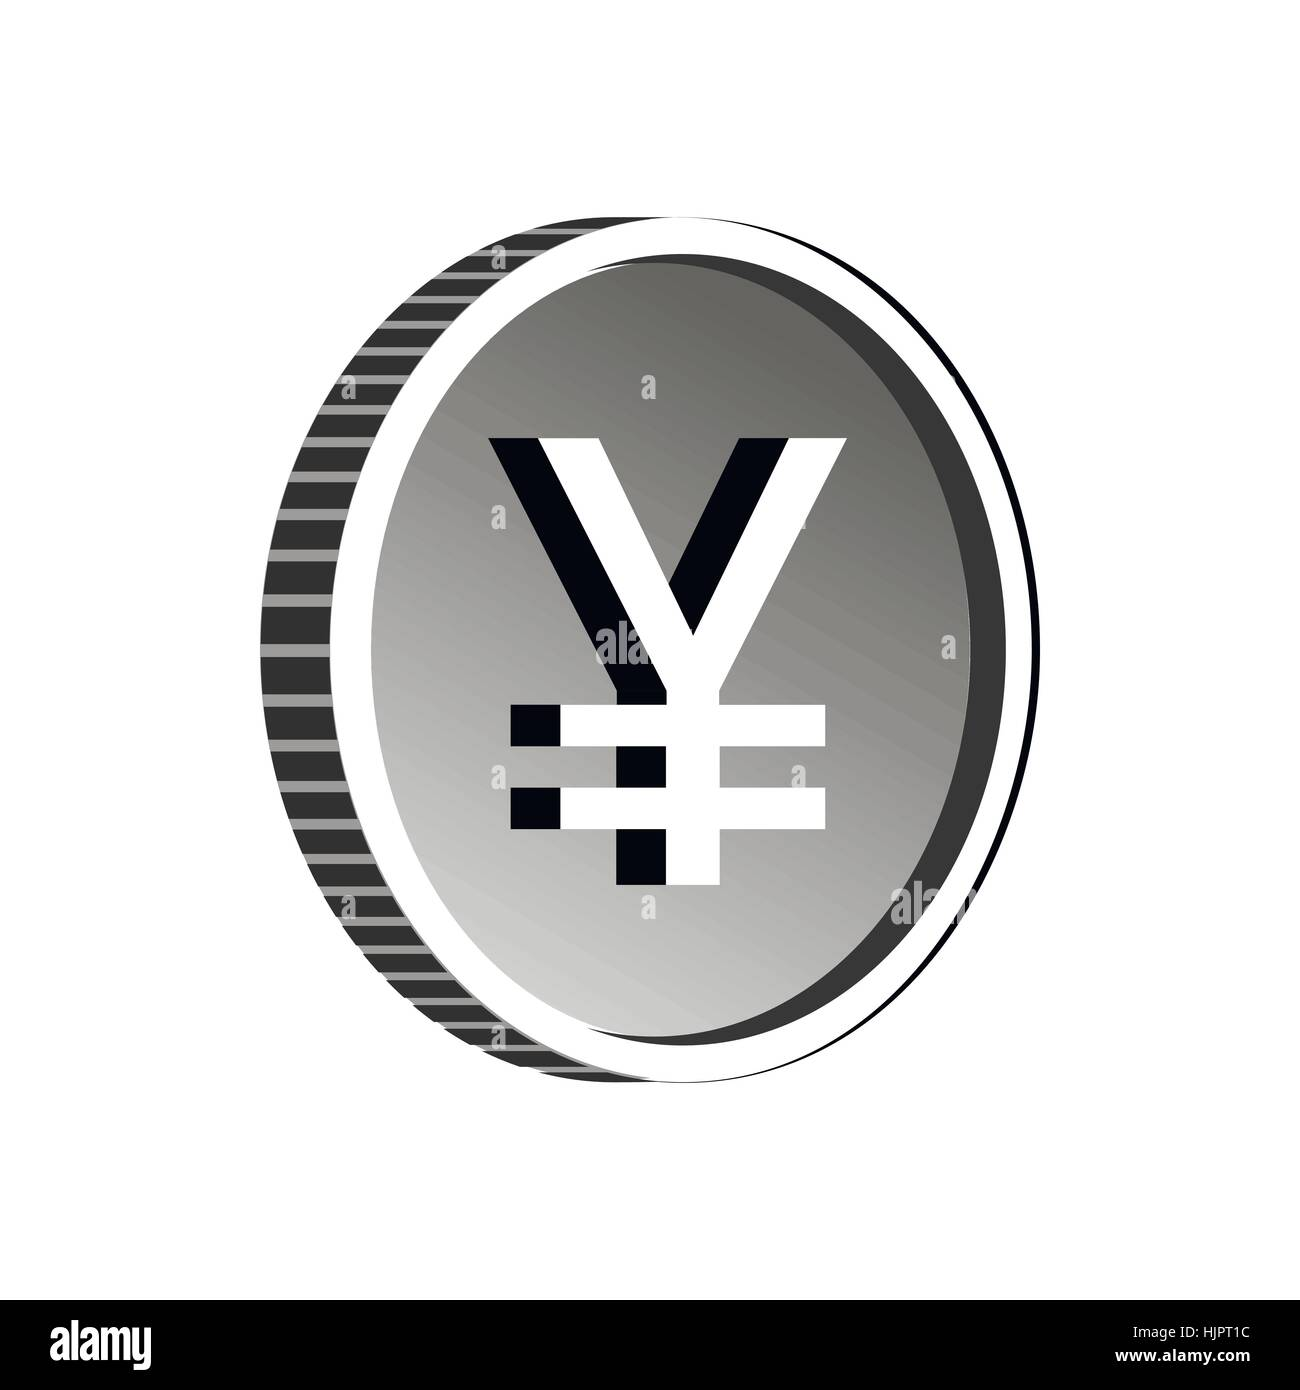 Japanese yen currency symbol icon in simple style isolated on japanese yen currency symbol icon in simple style isolated on white background biocorpaavc